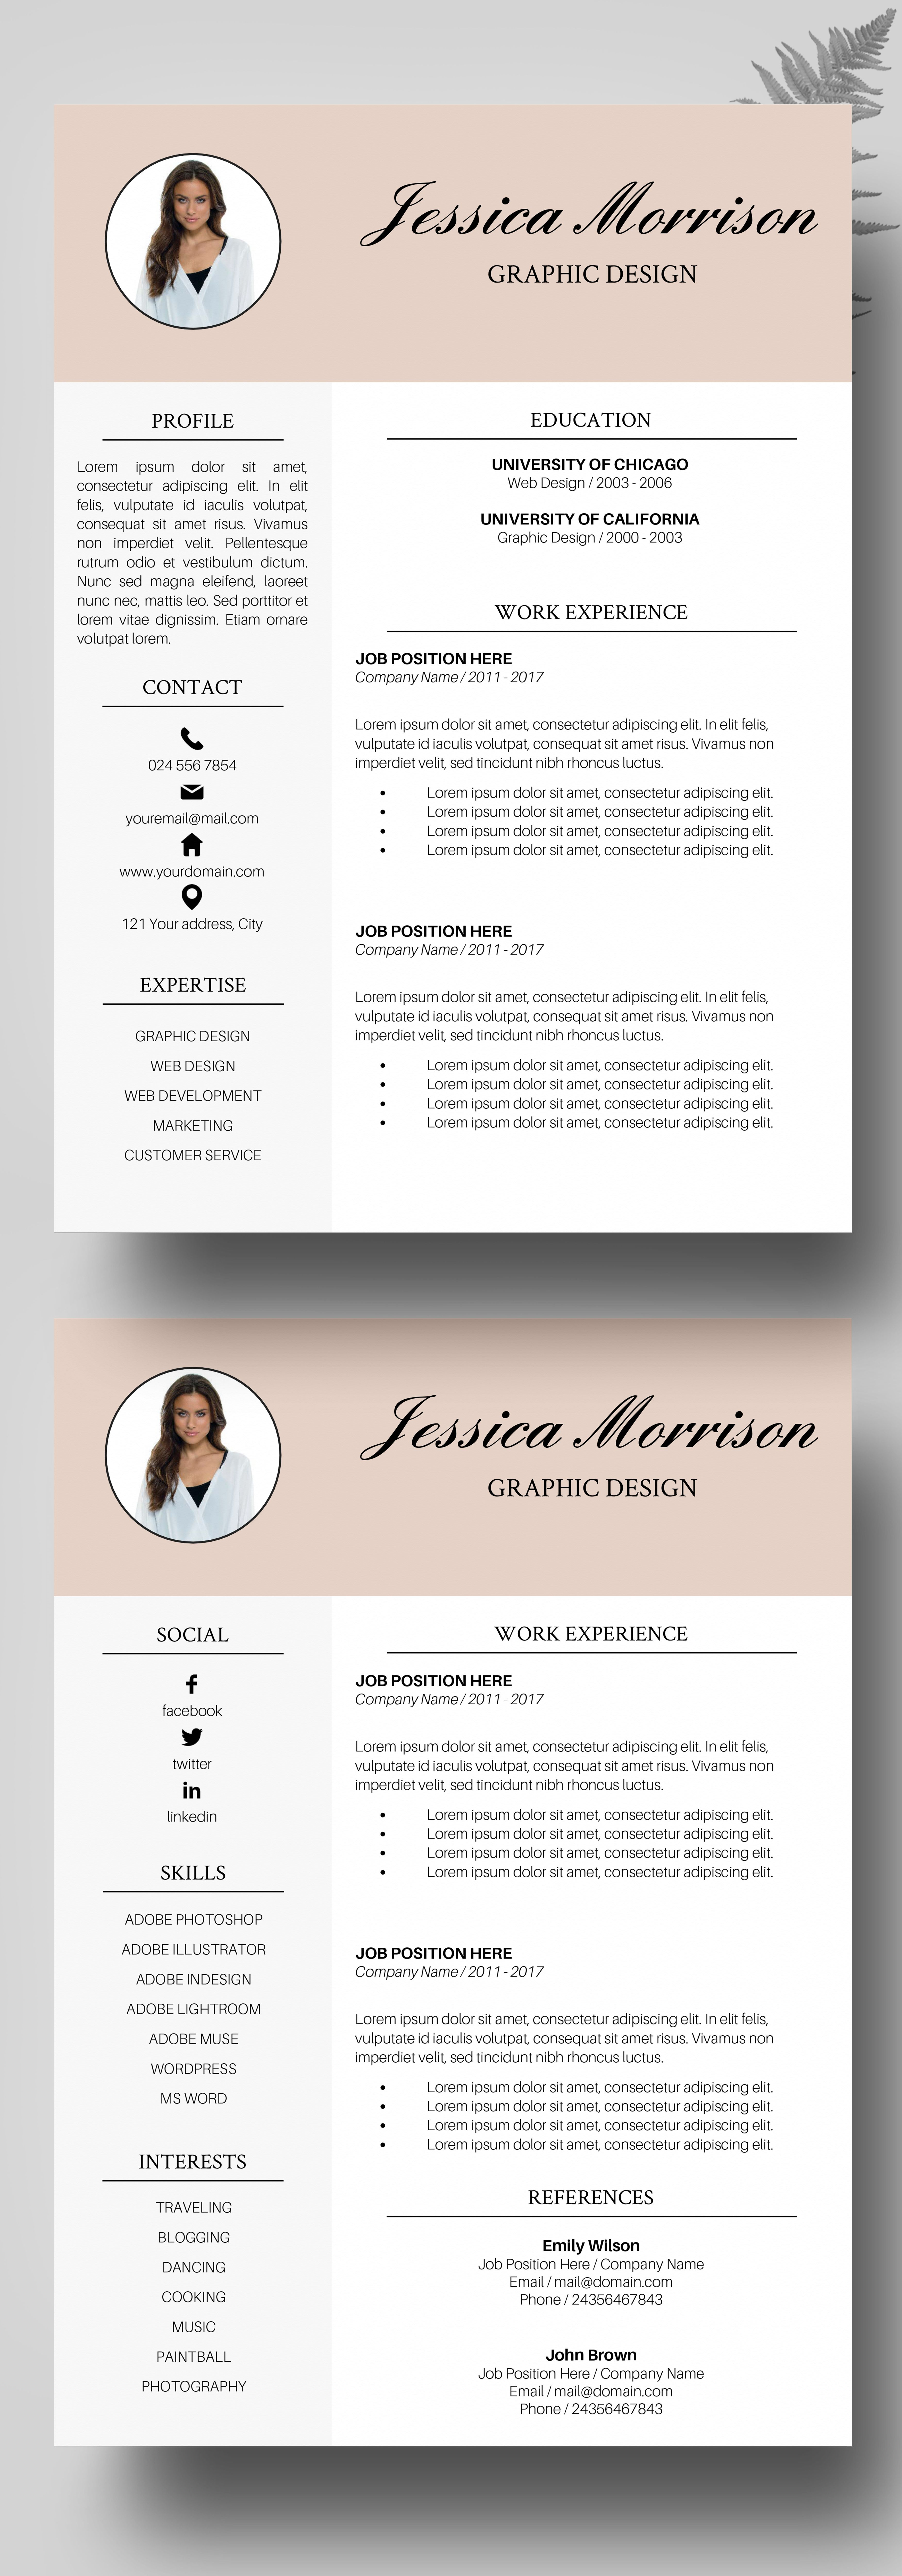 photo resume template  resume instant download  cv template word  creative resume  resume design